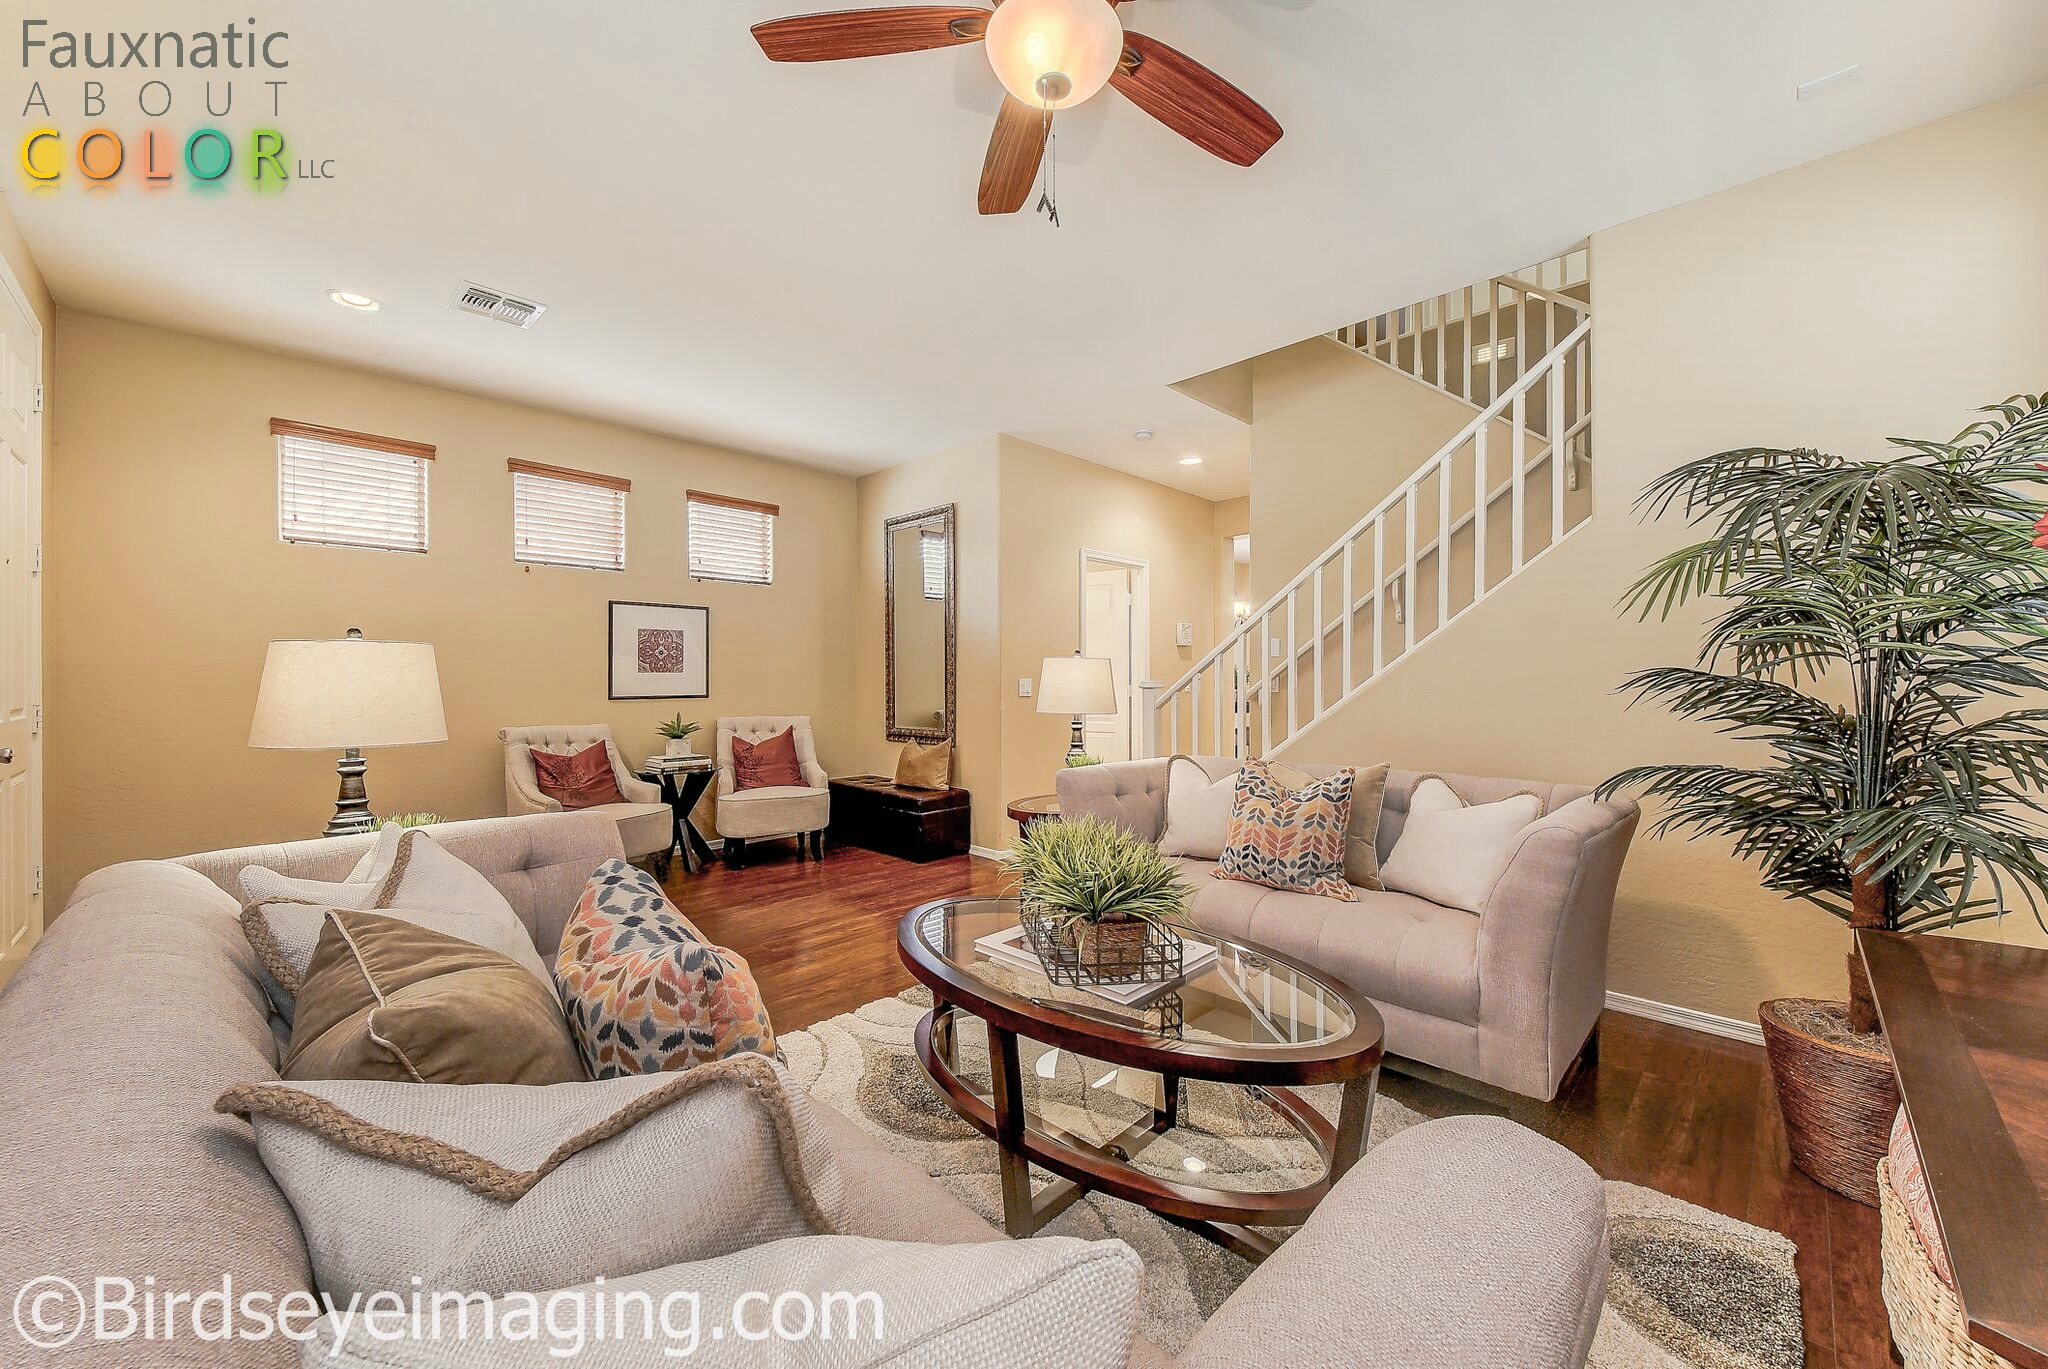 A-Living Room Overview2.jpg